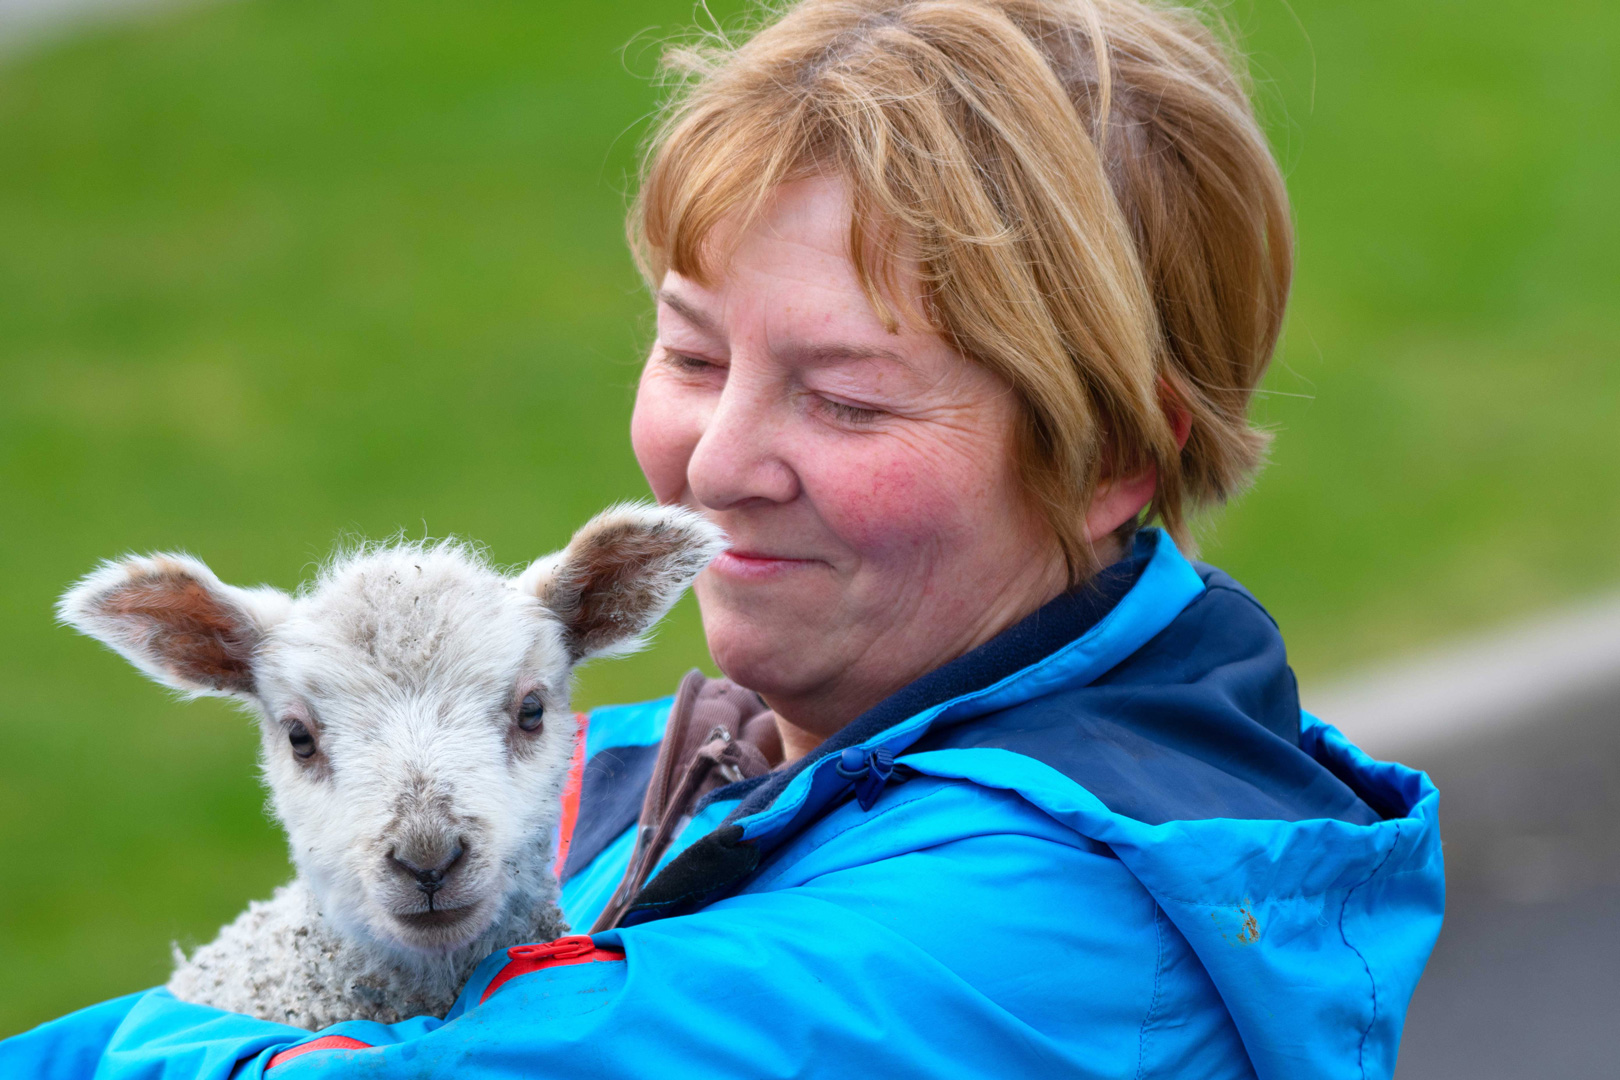 Sue brings a little visitor to Chester's Croft